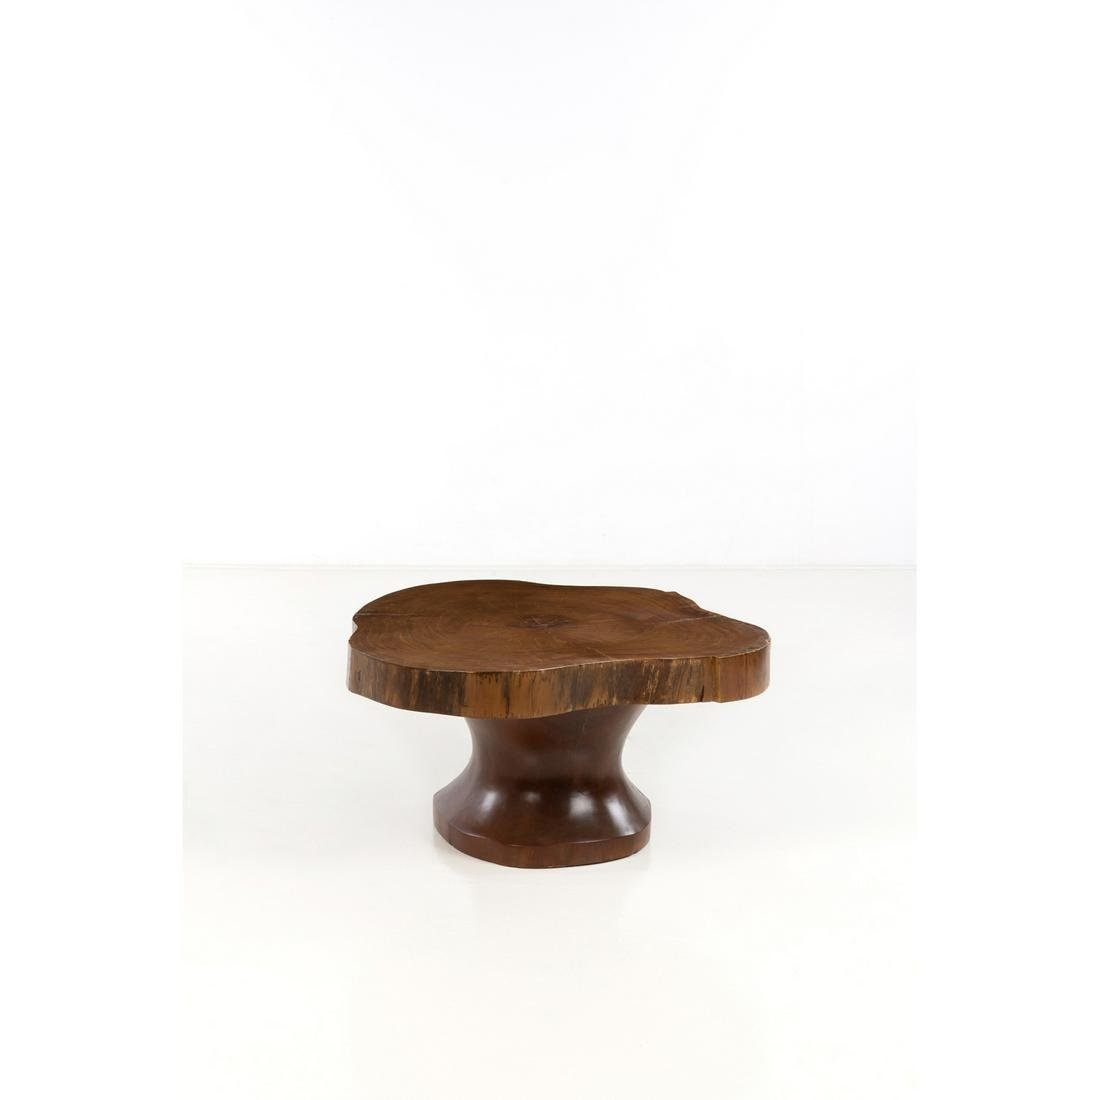 ƒ Jose Zanine Caldas (1919-2001) Coffee table